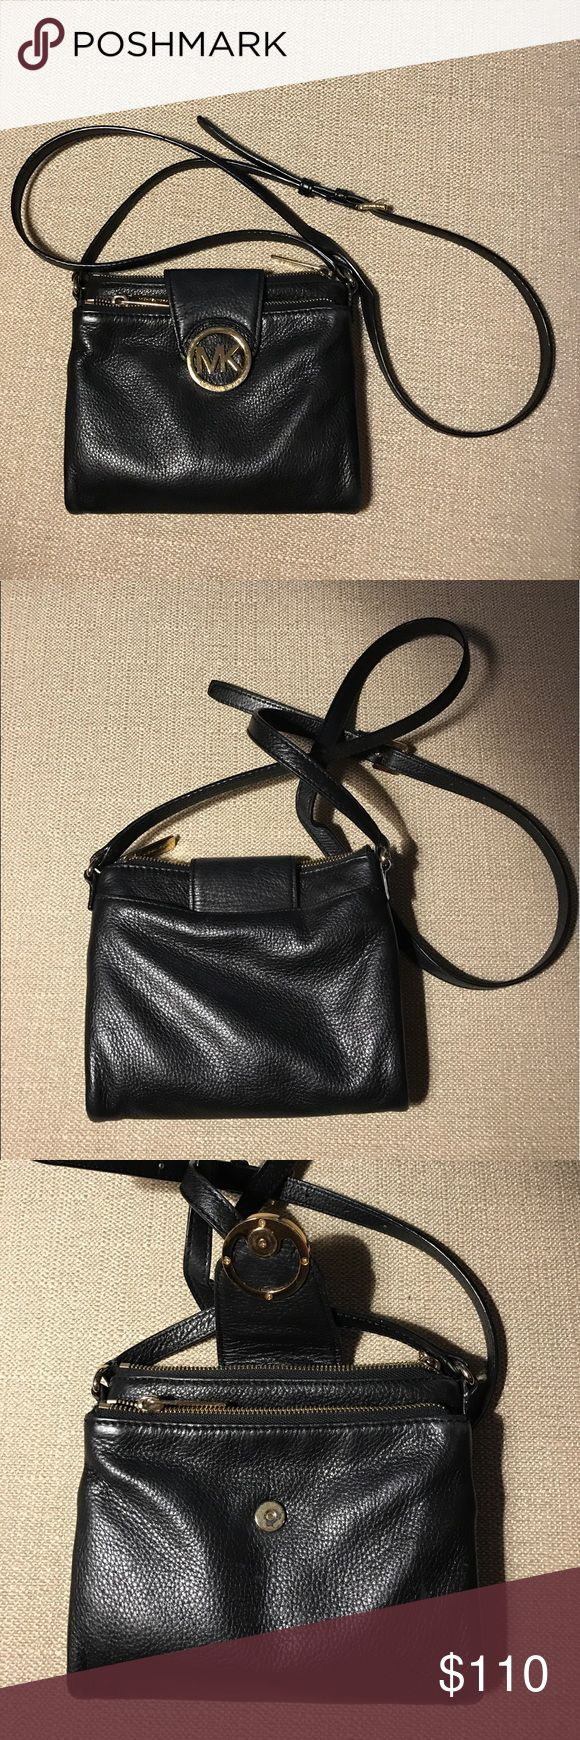 MICHAEL KORS BLACK PURSE ❤️ Some wear on the gold logo but otherwise in good condition 💕 KORS Michael Kors Bags Crossbody Bags